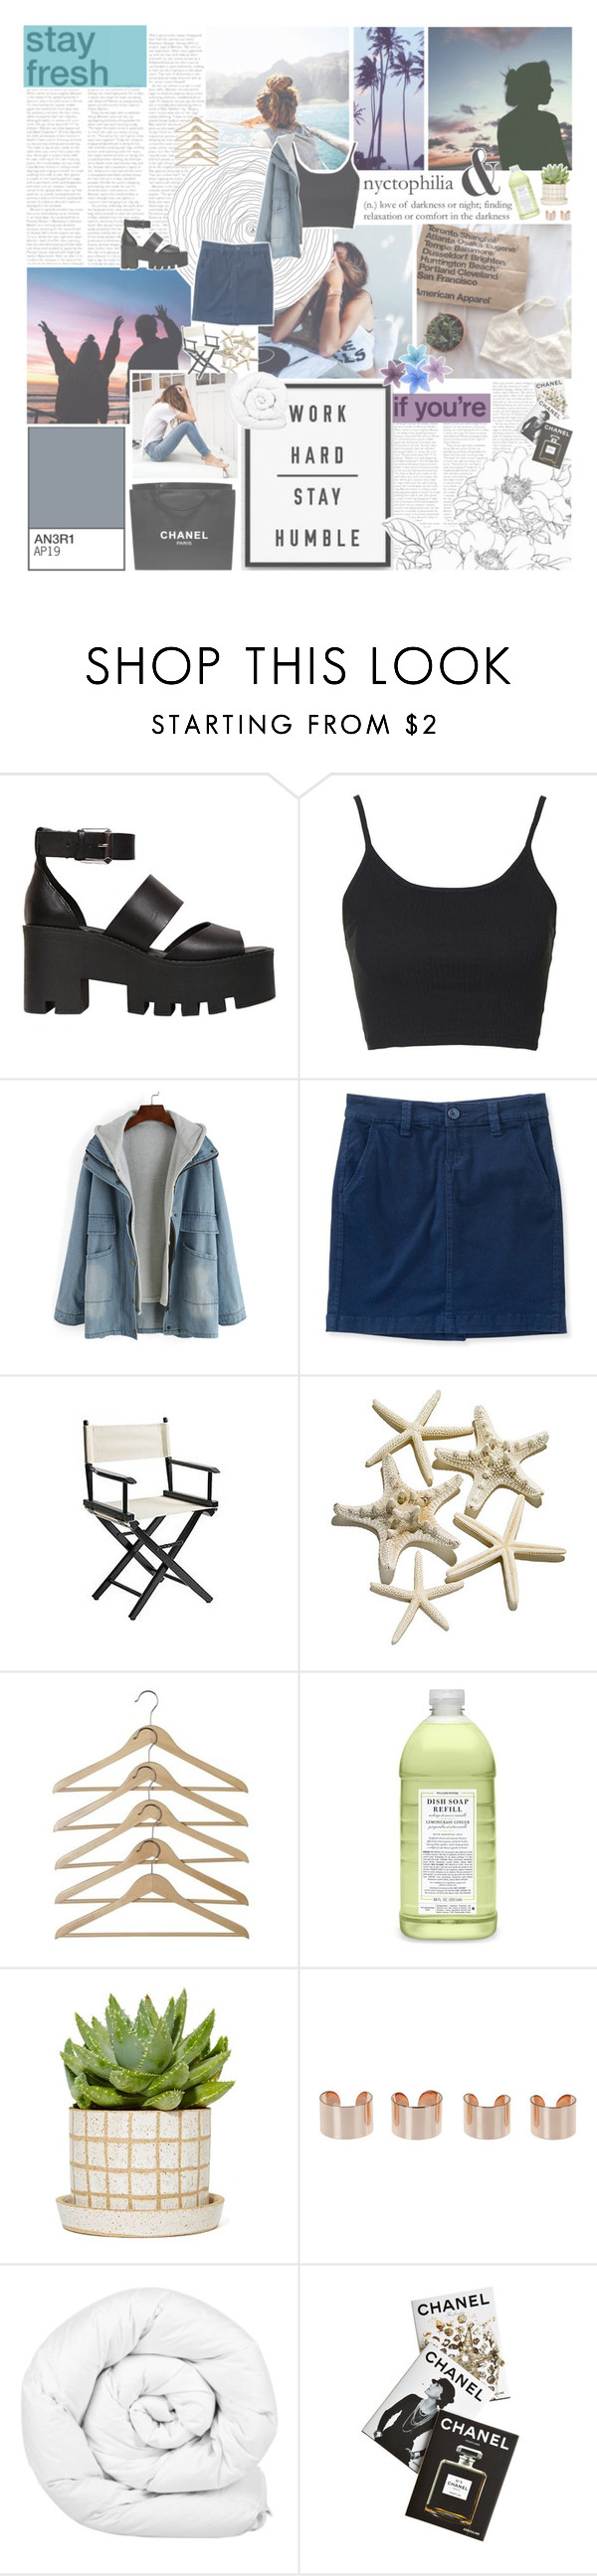 """""""≪ wave after wave"""" by xhopefulromanticx ❤ liked on Polyvore featuring Windsor Smith, Topshop, Aéropostale, Chanel, Pier 1 Imports, Williams-Sonoma, Maison Margiela, Brinkhaus and Assouline Publishing"""